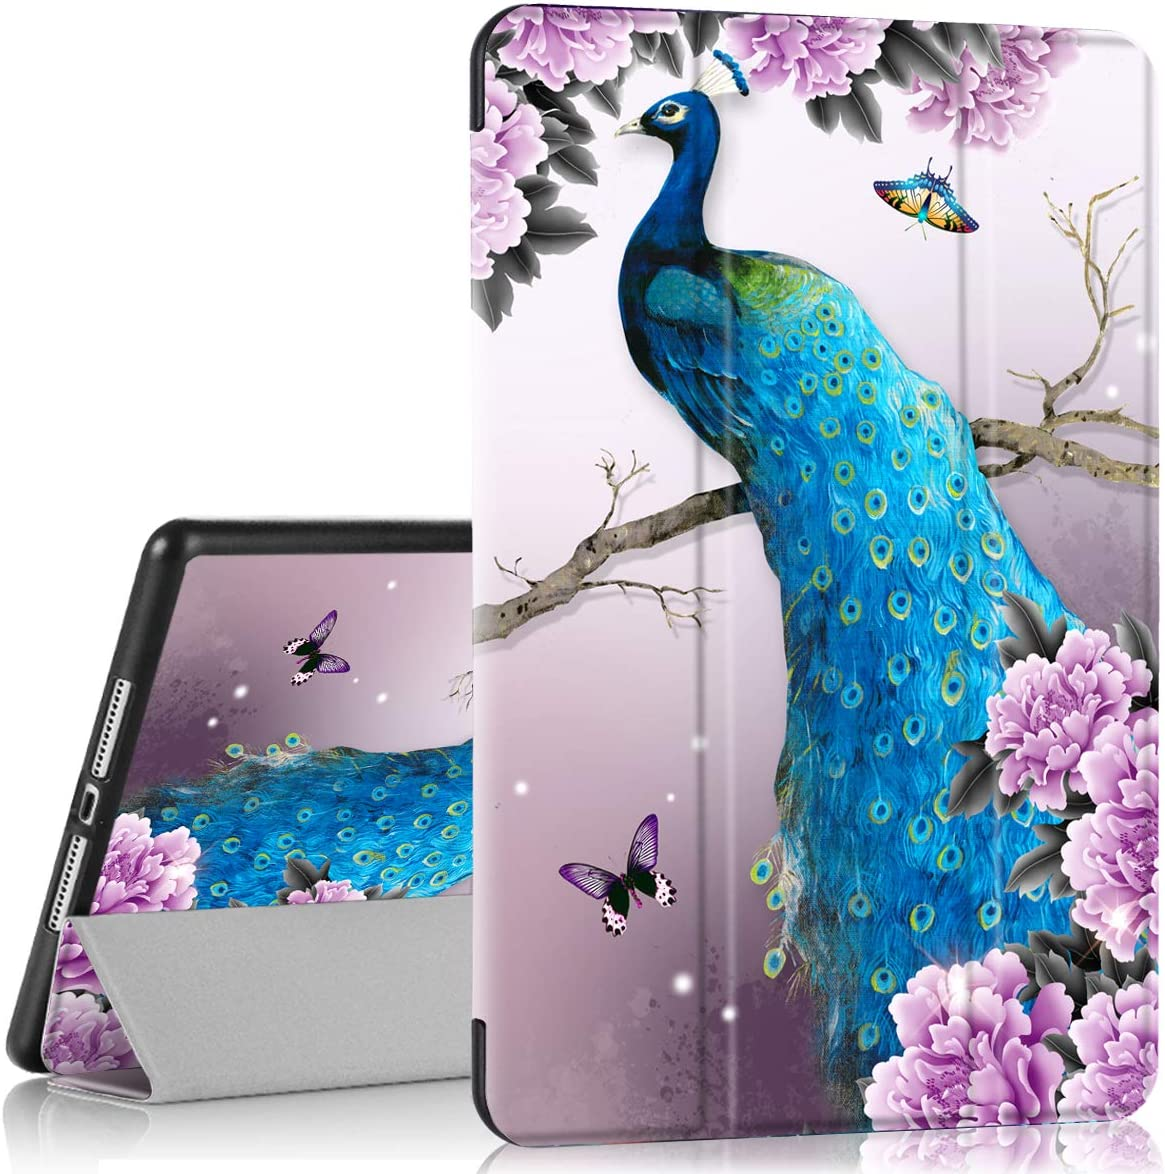 PIXIU ipad 10.2 2020/ 2019 case with Pencil Holder ,PIXIU ipad 7th /8th Generation Cases,Full Body Protective Folio Leather Smart case Cover with Wake/Sleep Feature Peacock